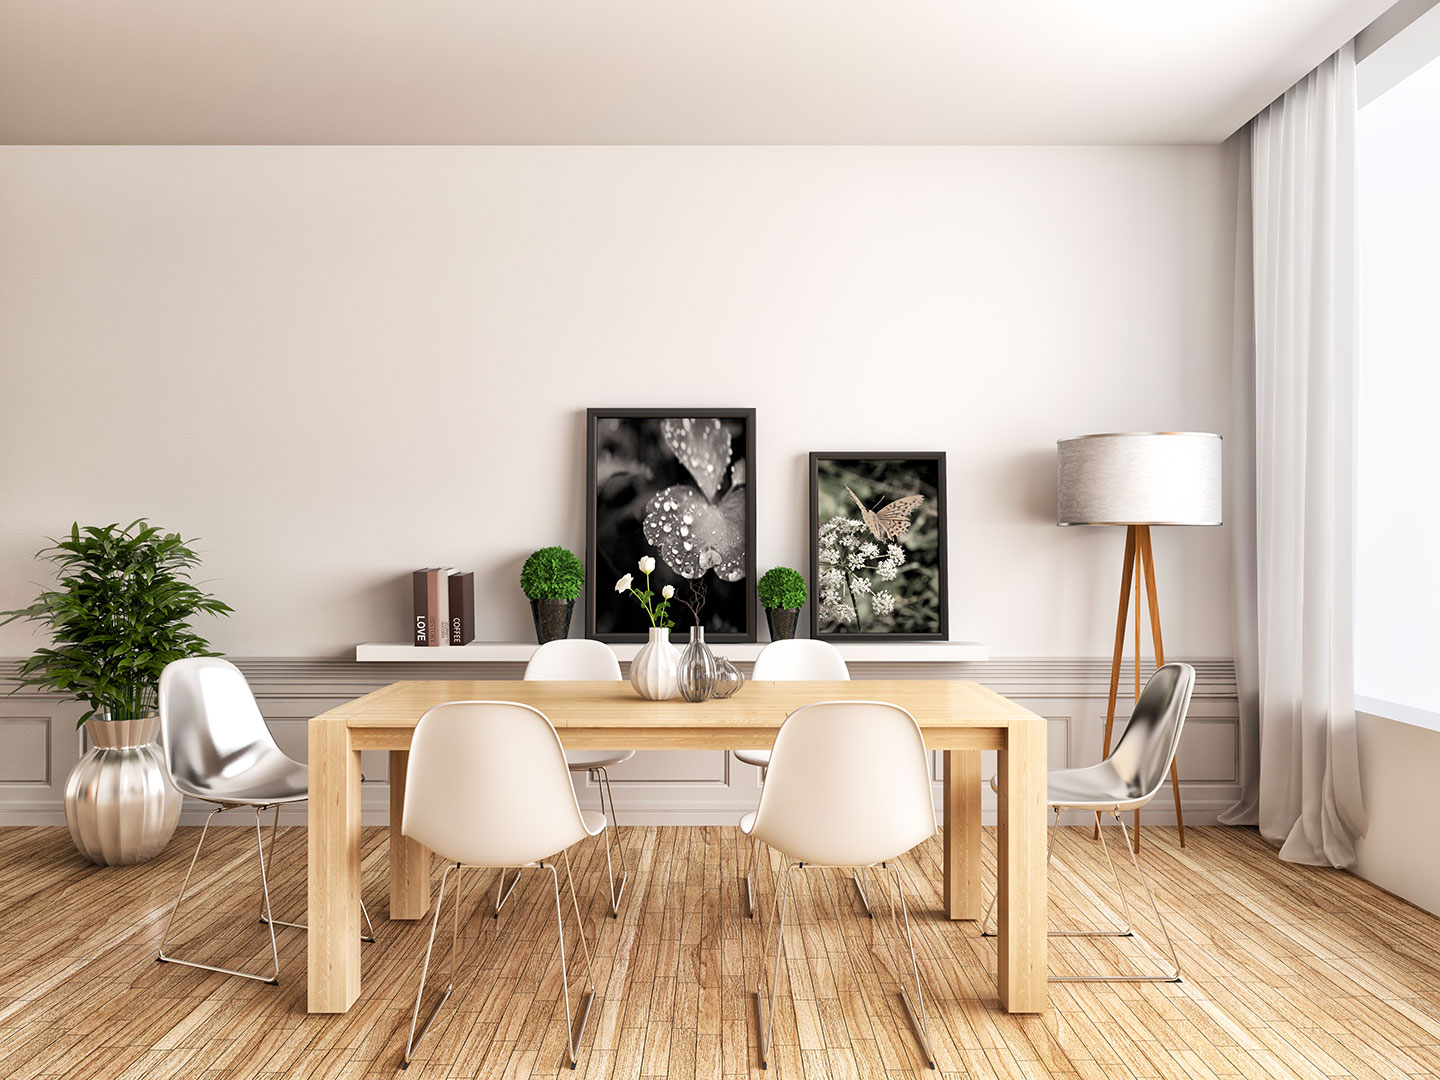 Image of dining room - The RW Real Estate Team